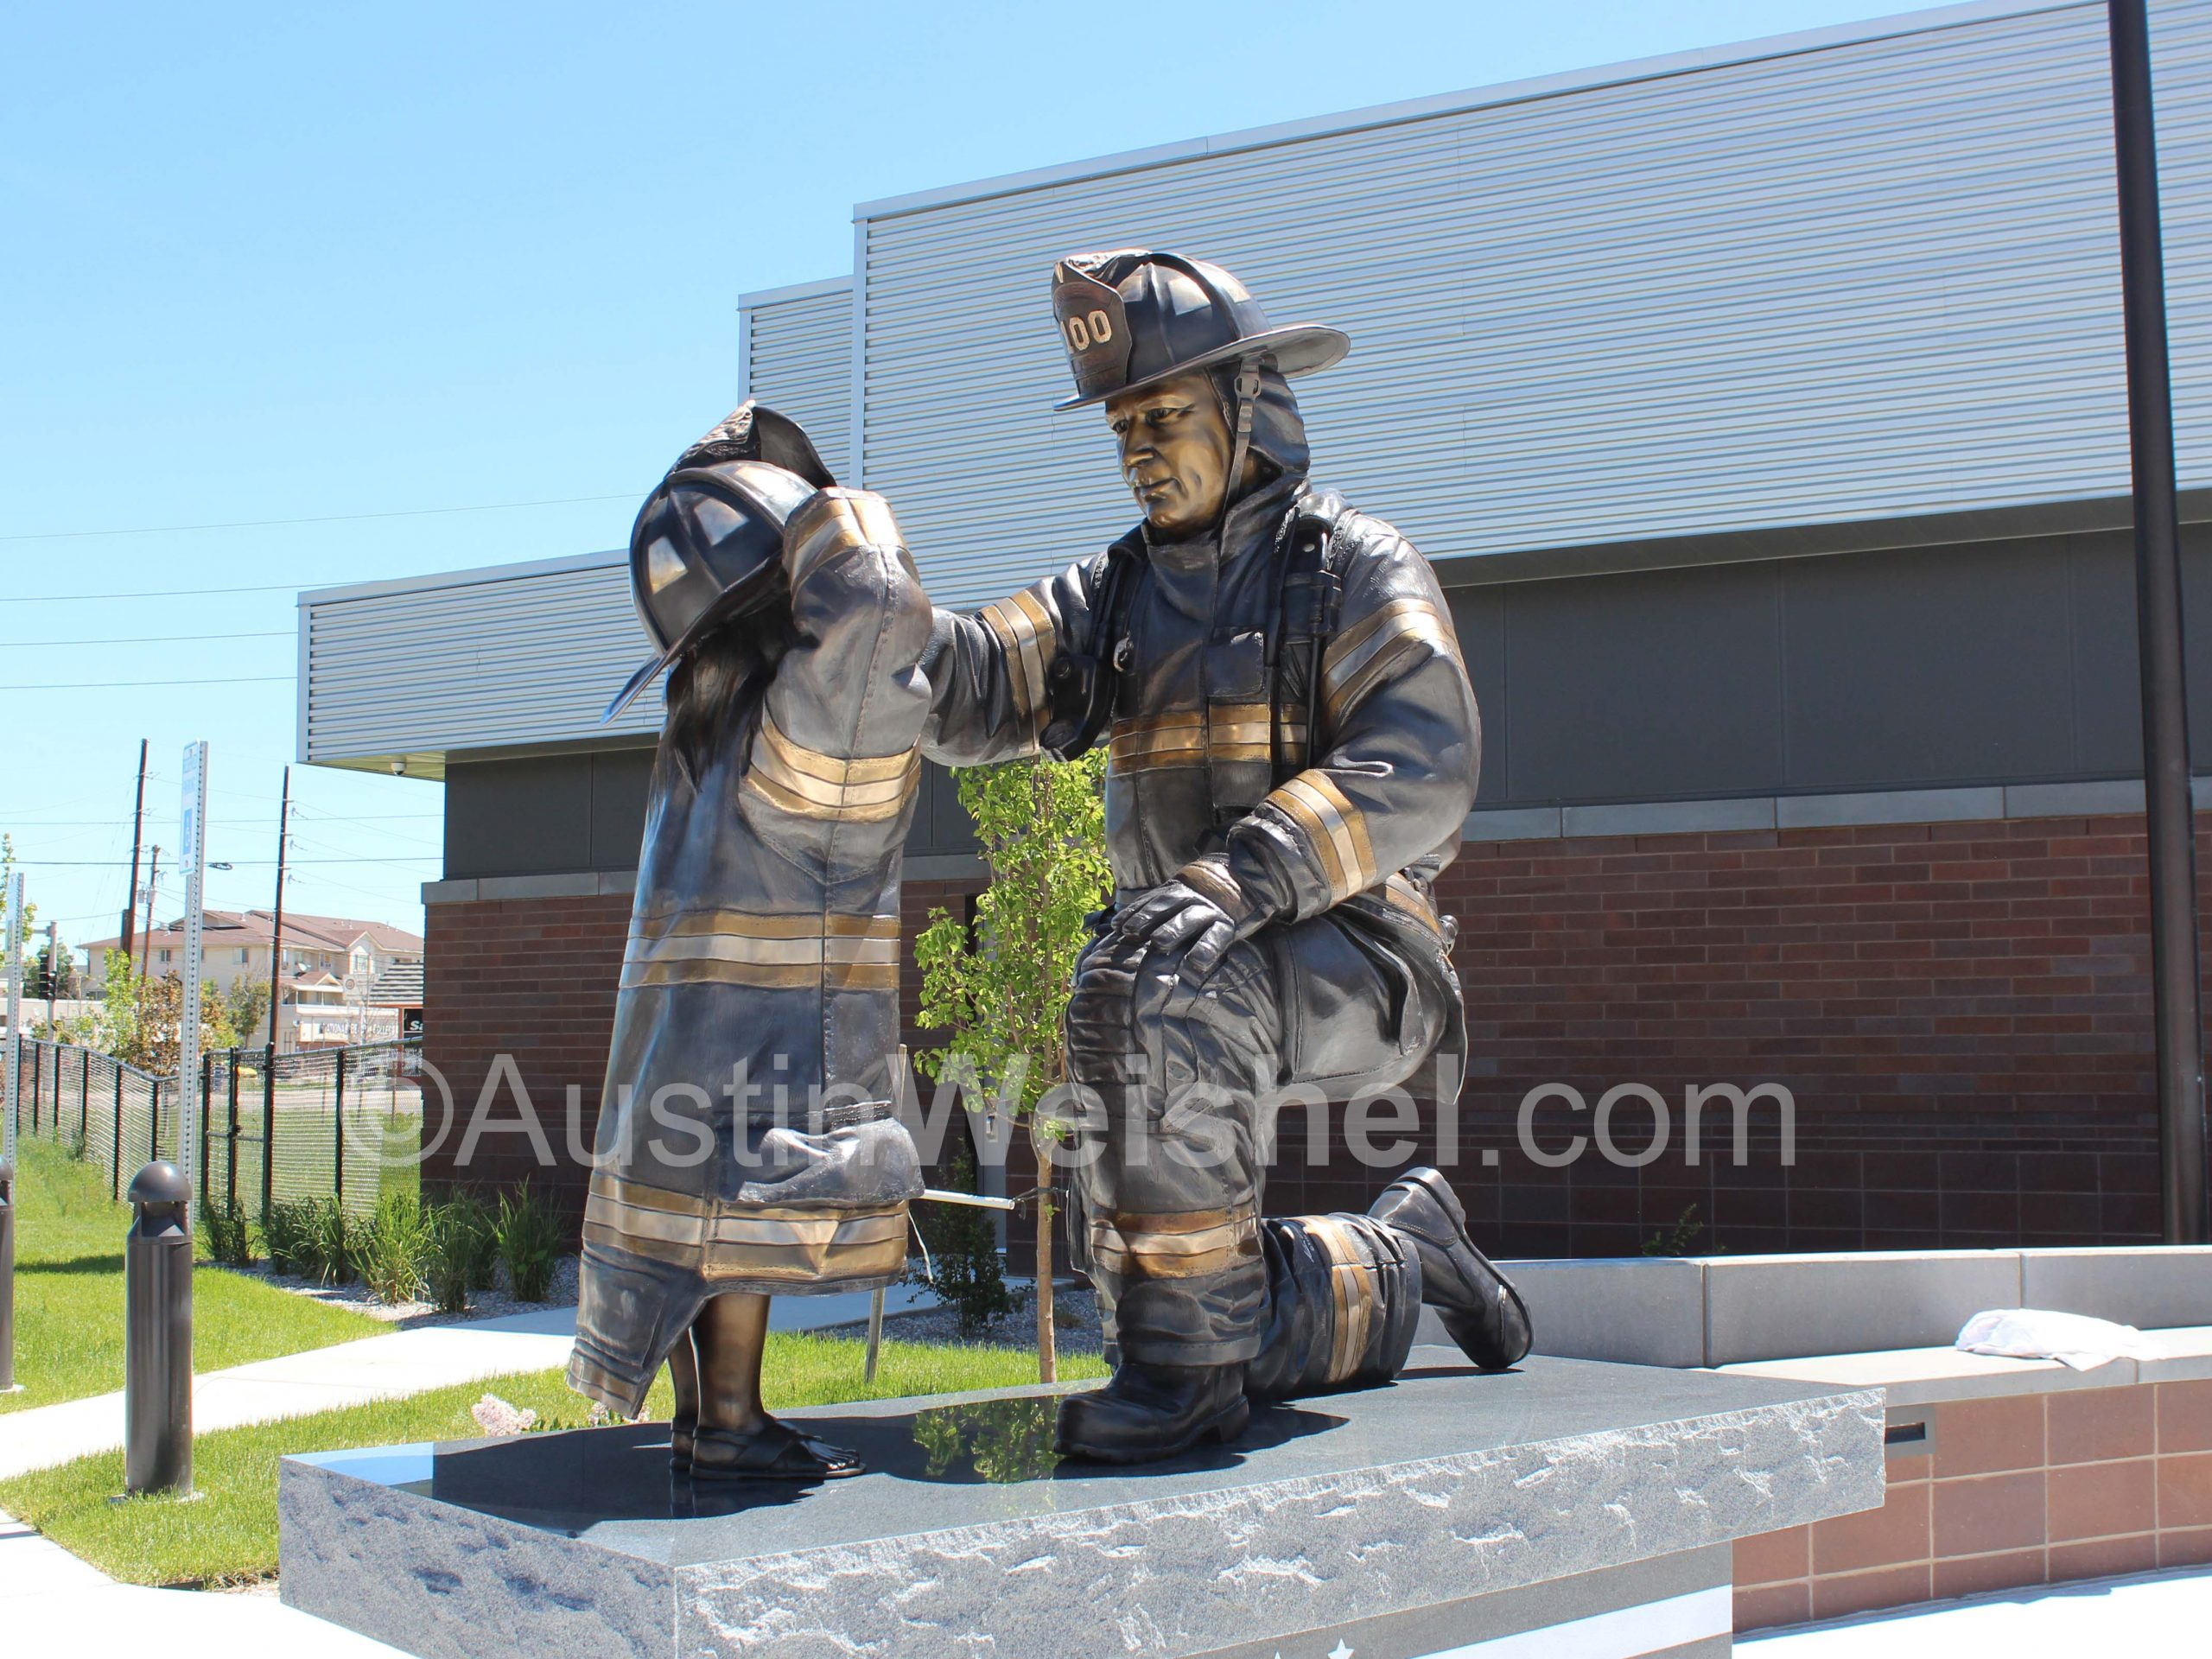 Austin Weishel hand sculpted a bronze firefighter tribute sculpture to honor the past, present, and future firefighters of Adams County Fire Rescue in Denver, Colorado